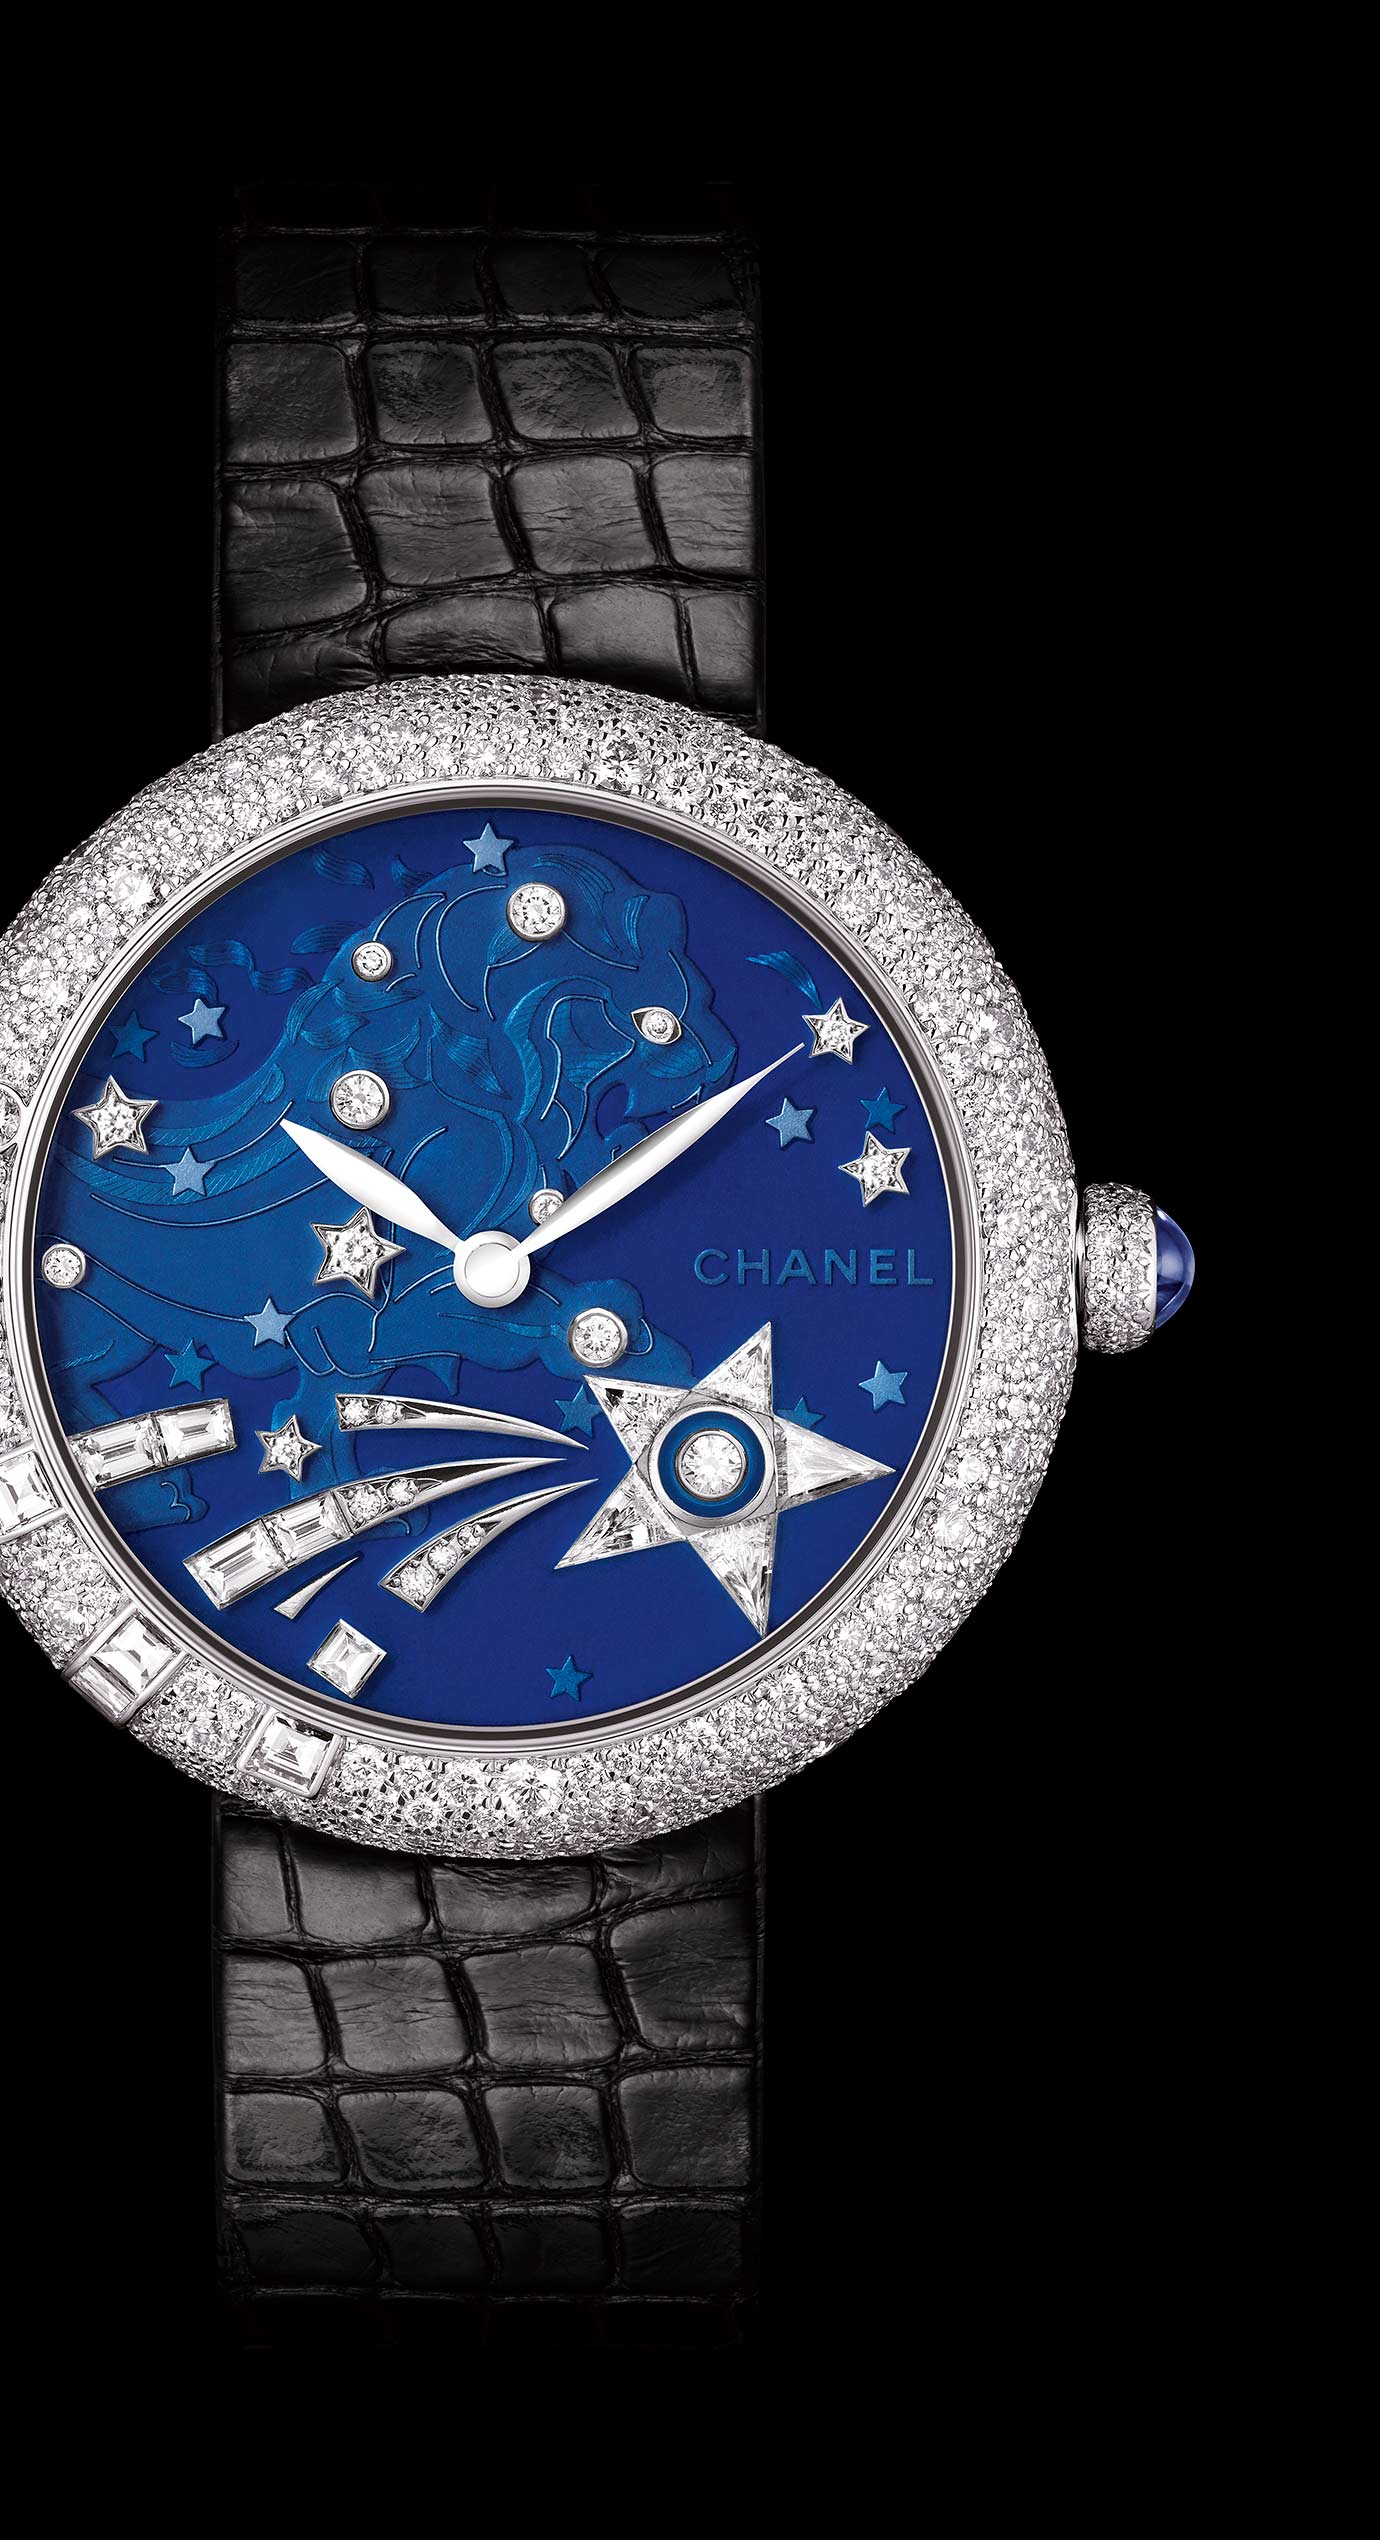 Mademoiselle Privé La Constellation du Lion Jewelry watch - Grand Feu blue translucent enamel and diamonds - Enlarged view